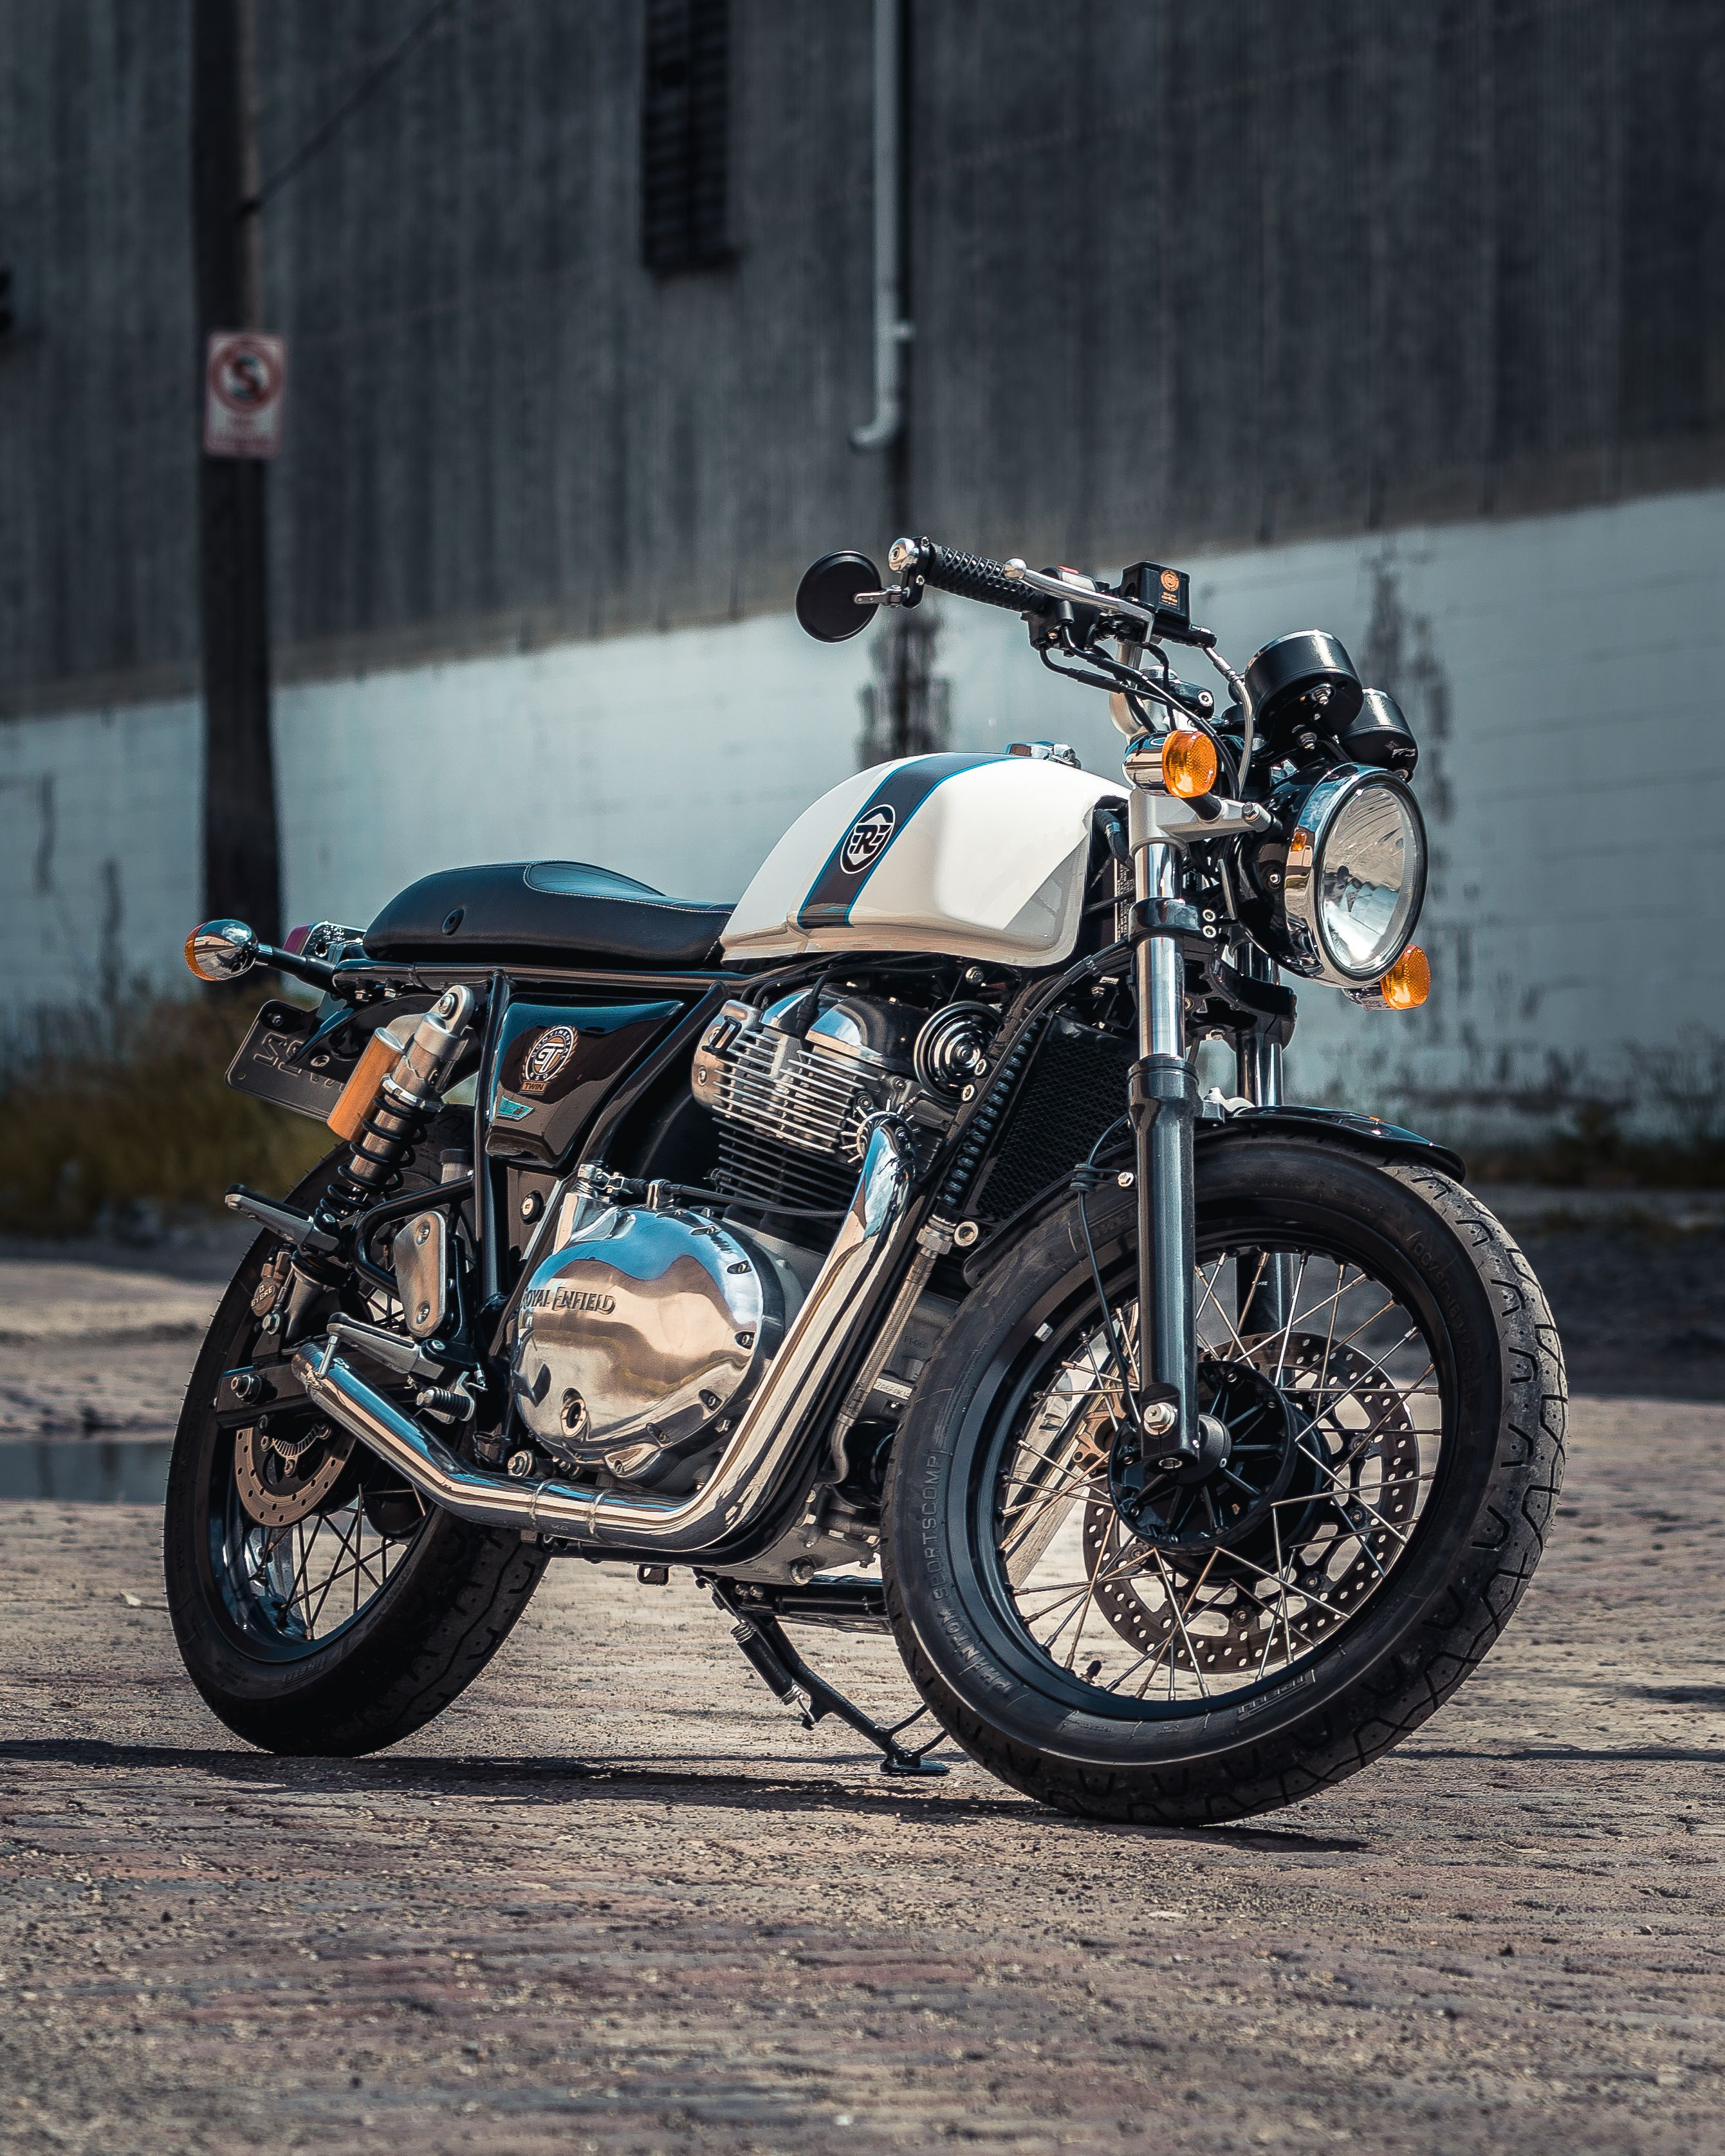 Continental Gt 650 Hd Iphone Wallpapers Wallpaper Cave